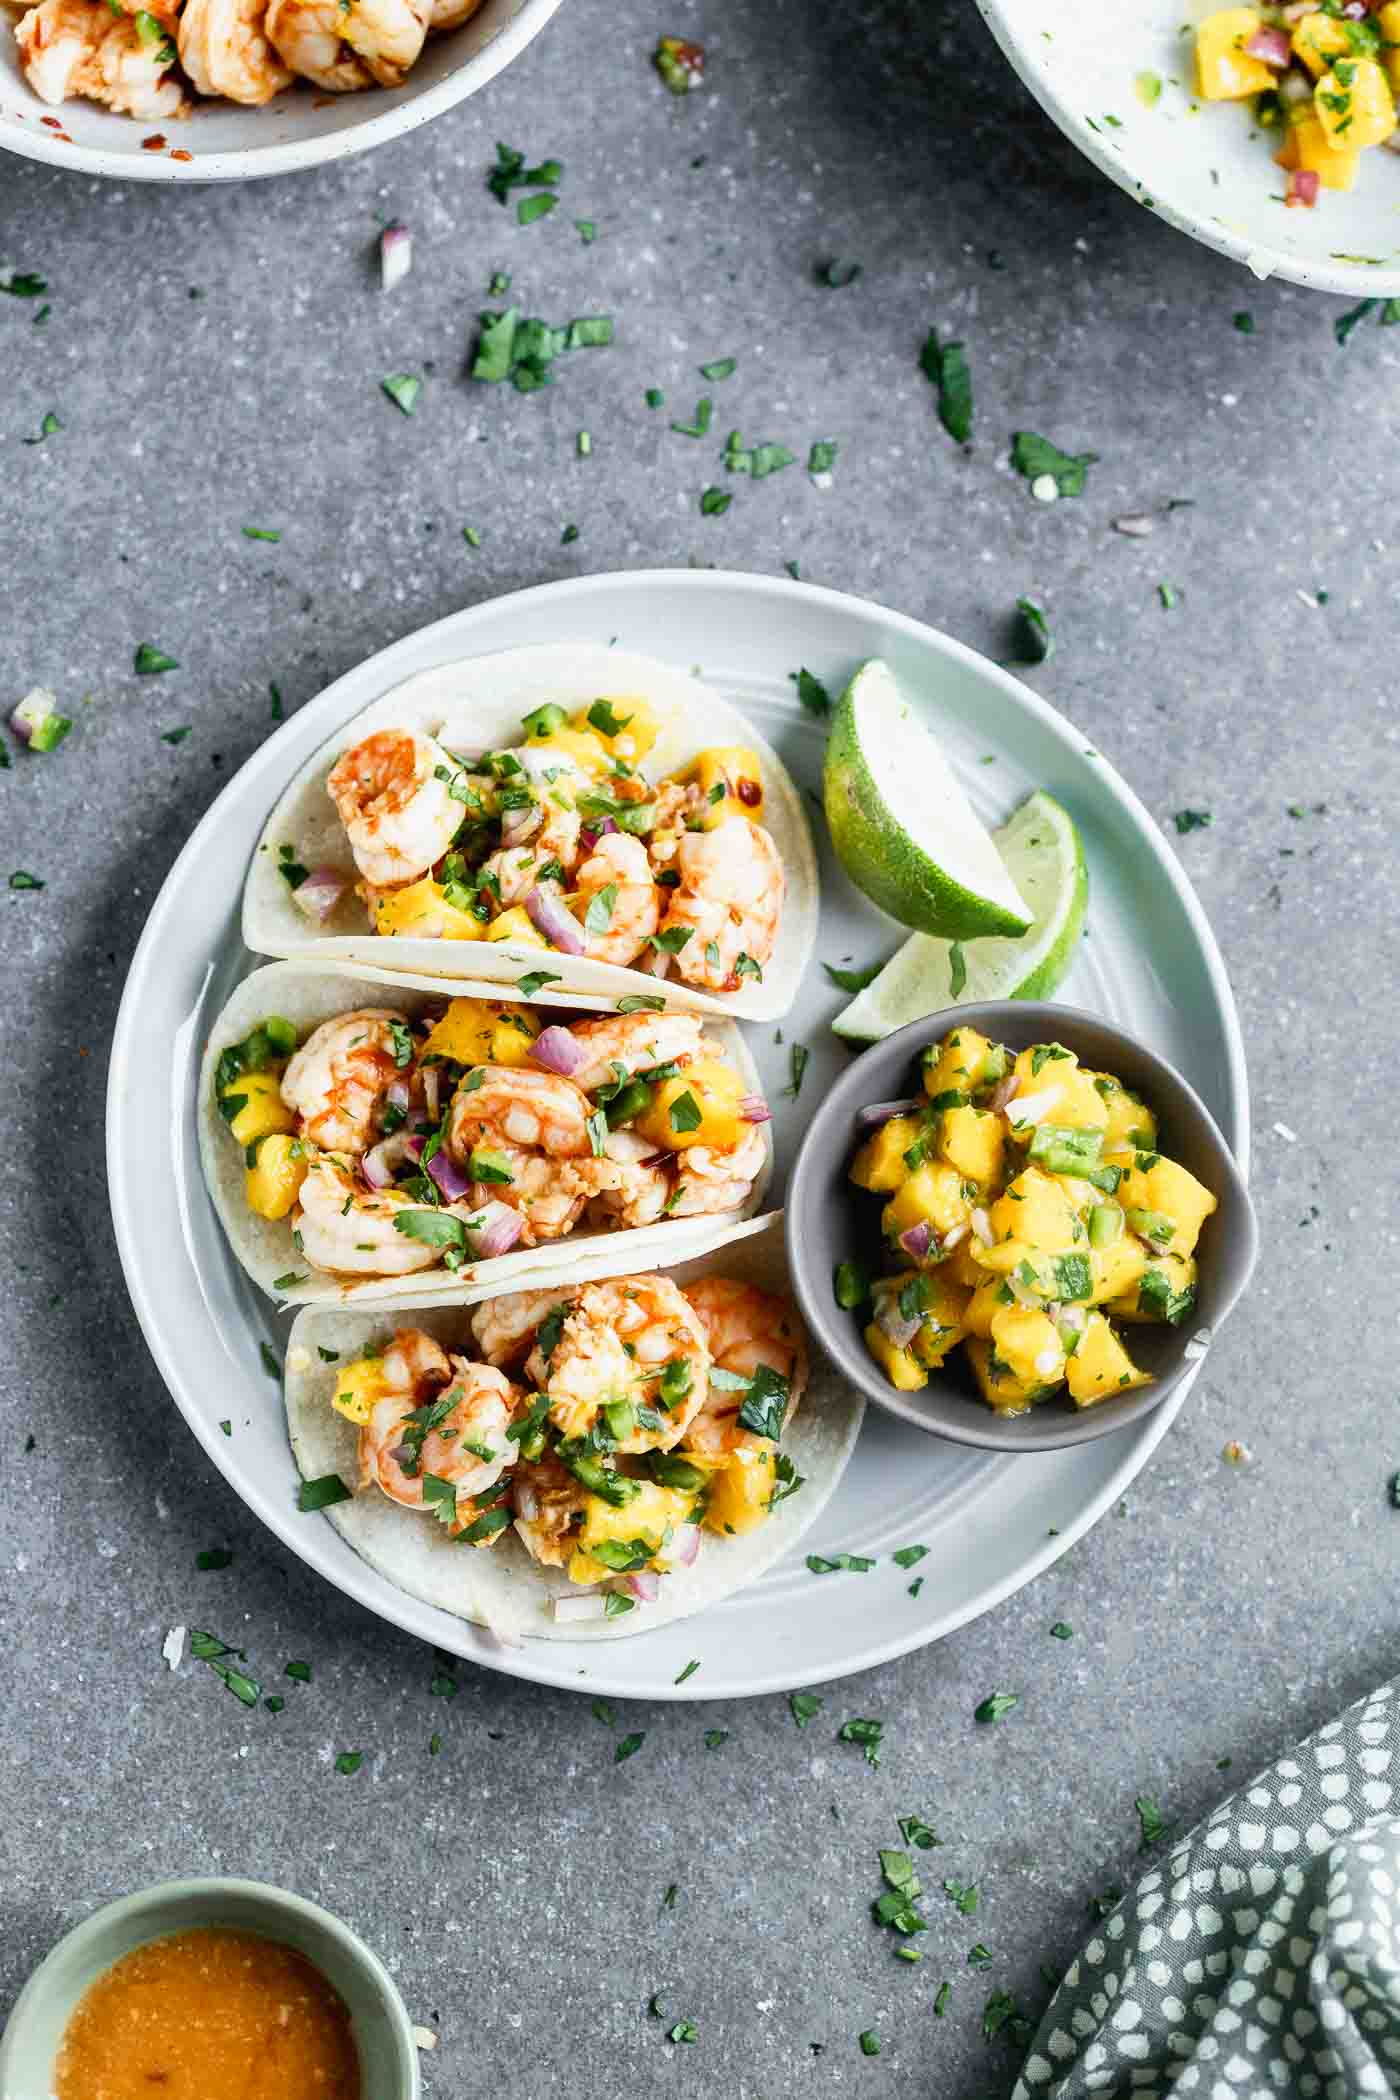 These Easy Chipotle Shrimp Tacos with Mango Salsa are perfect for breezy summer lunches, healthy dinners, or any kind of celebration. Plump shrimp are flavored with chipotle peppers, lime juice, and honey, baked and nestled into corn tortillas (or lettuce wraps!). Each taco is topped off with a quick homemade mango salsa, a little bit of cilantro, and ready to be served!